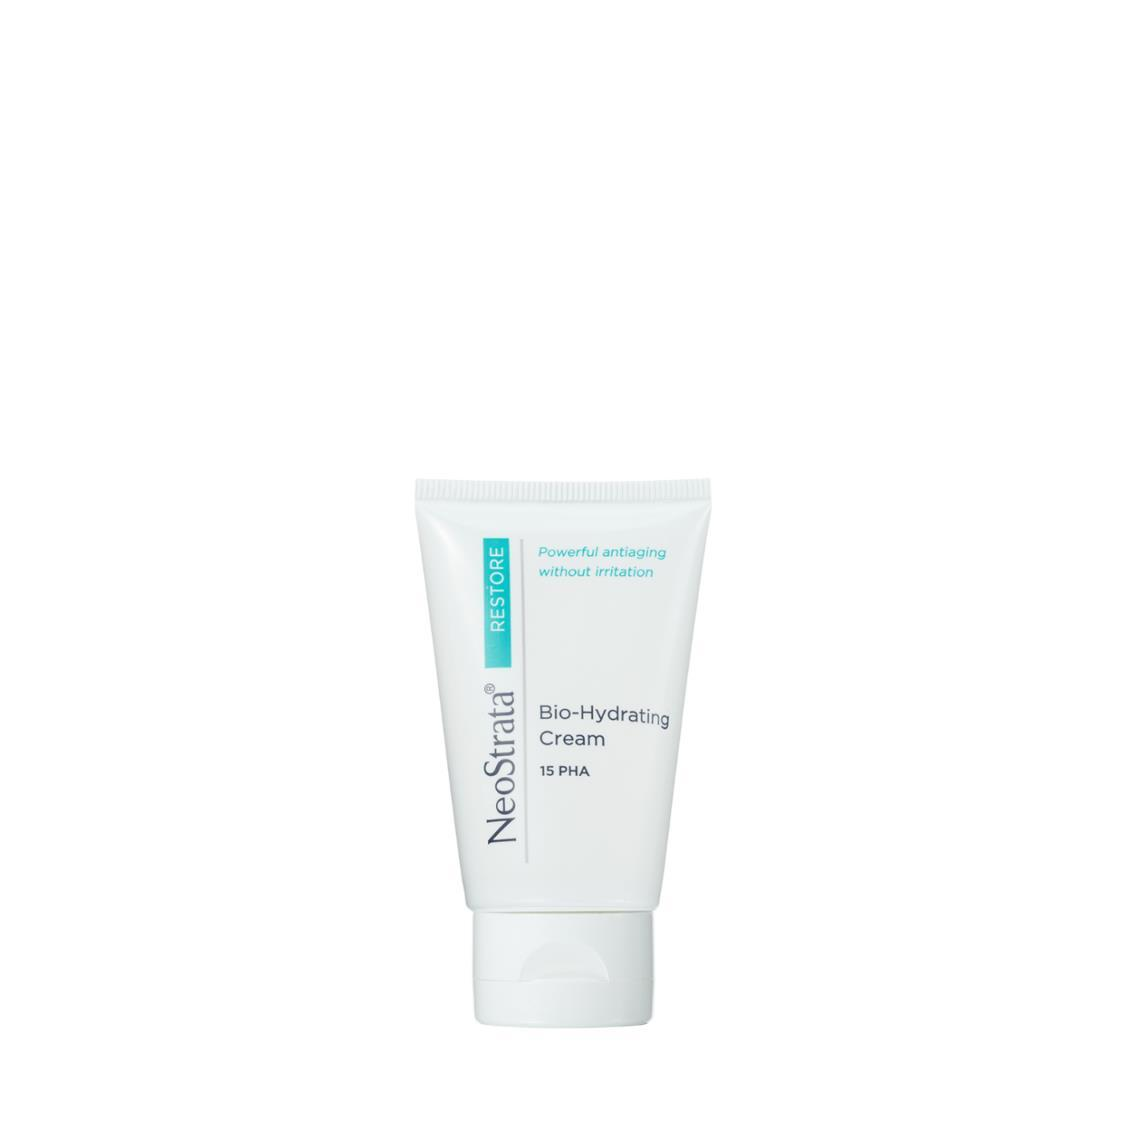 Bio Hydrating Cream 40g